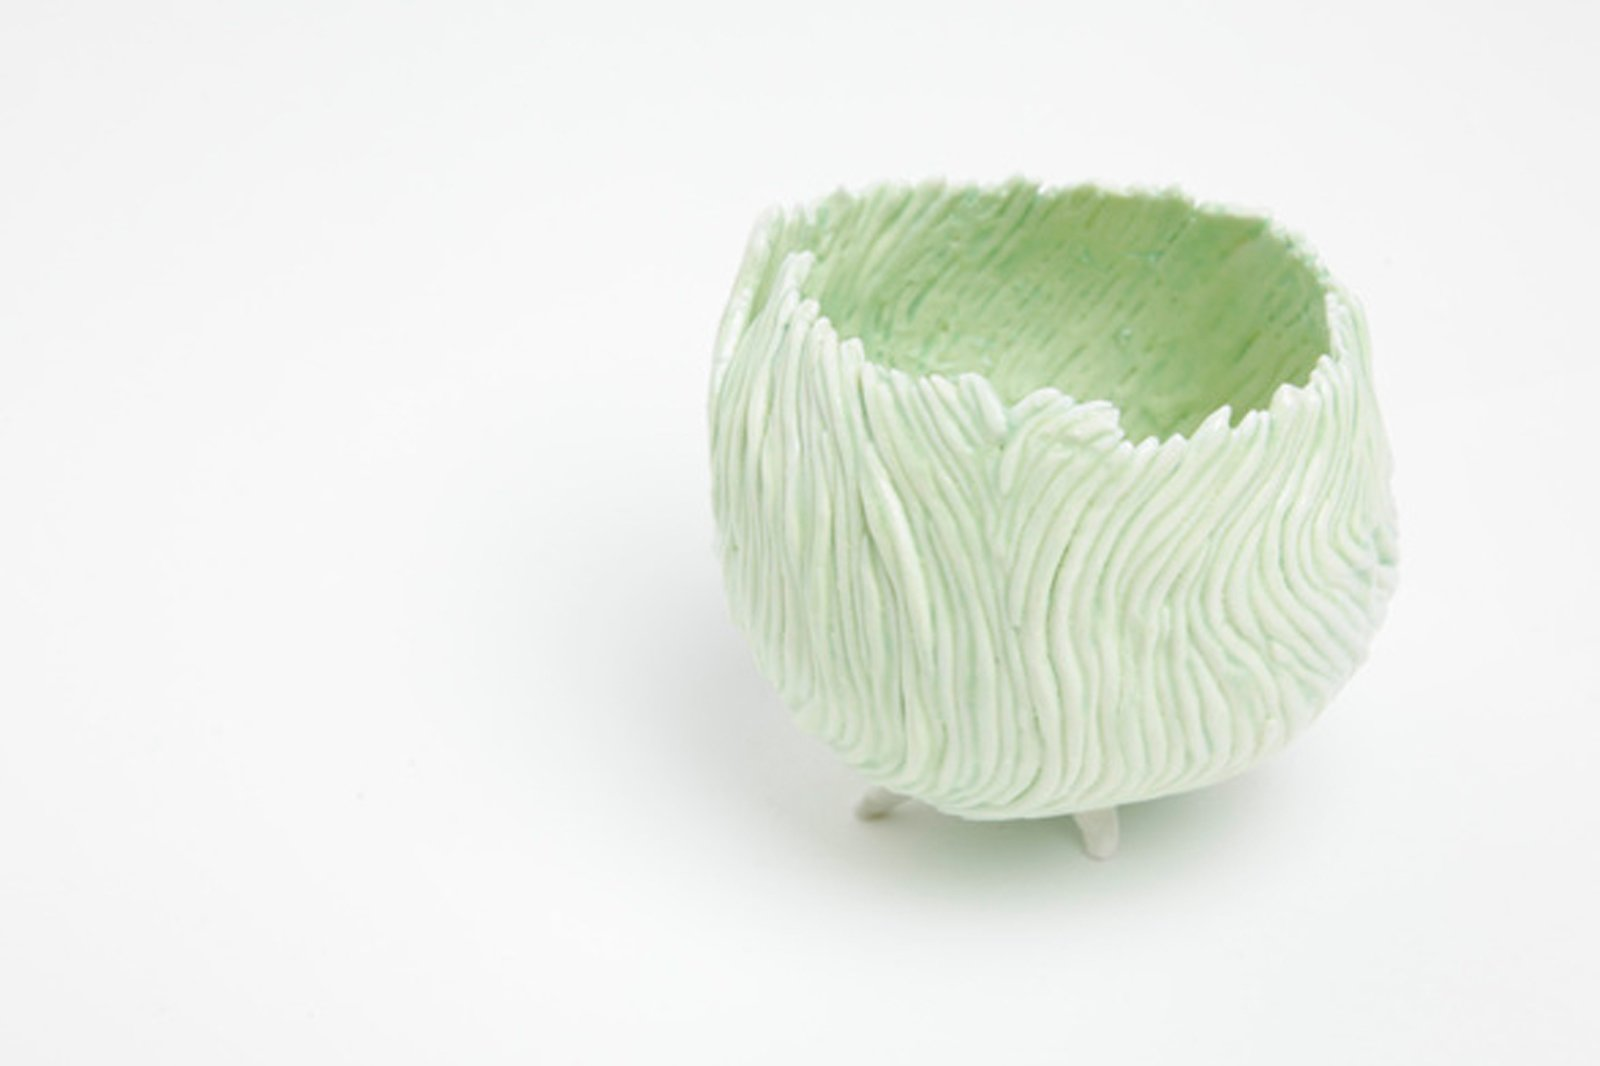 Swirl vase by Susanne Harder, $234. Susanne Harder is a Danish ceramicist whose delicate work is exclusively sold at Totokaelo.  Shop Talk: 10 New Pieces from Totokaelo Art—Object by Kelsey Keith